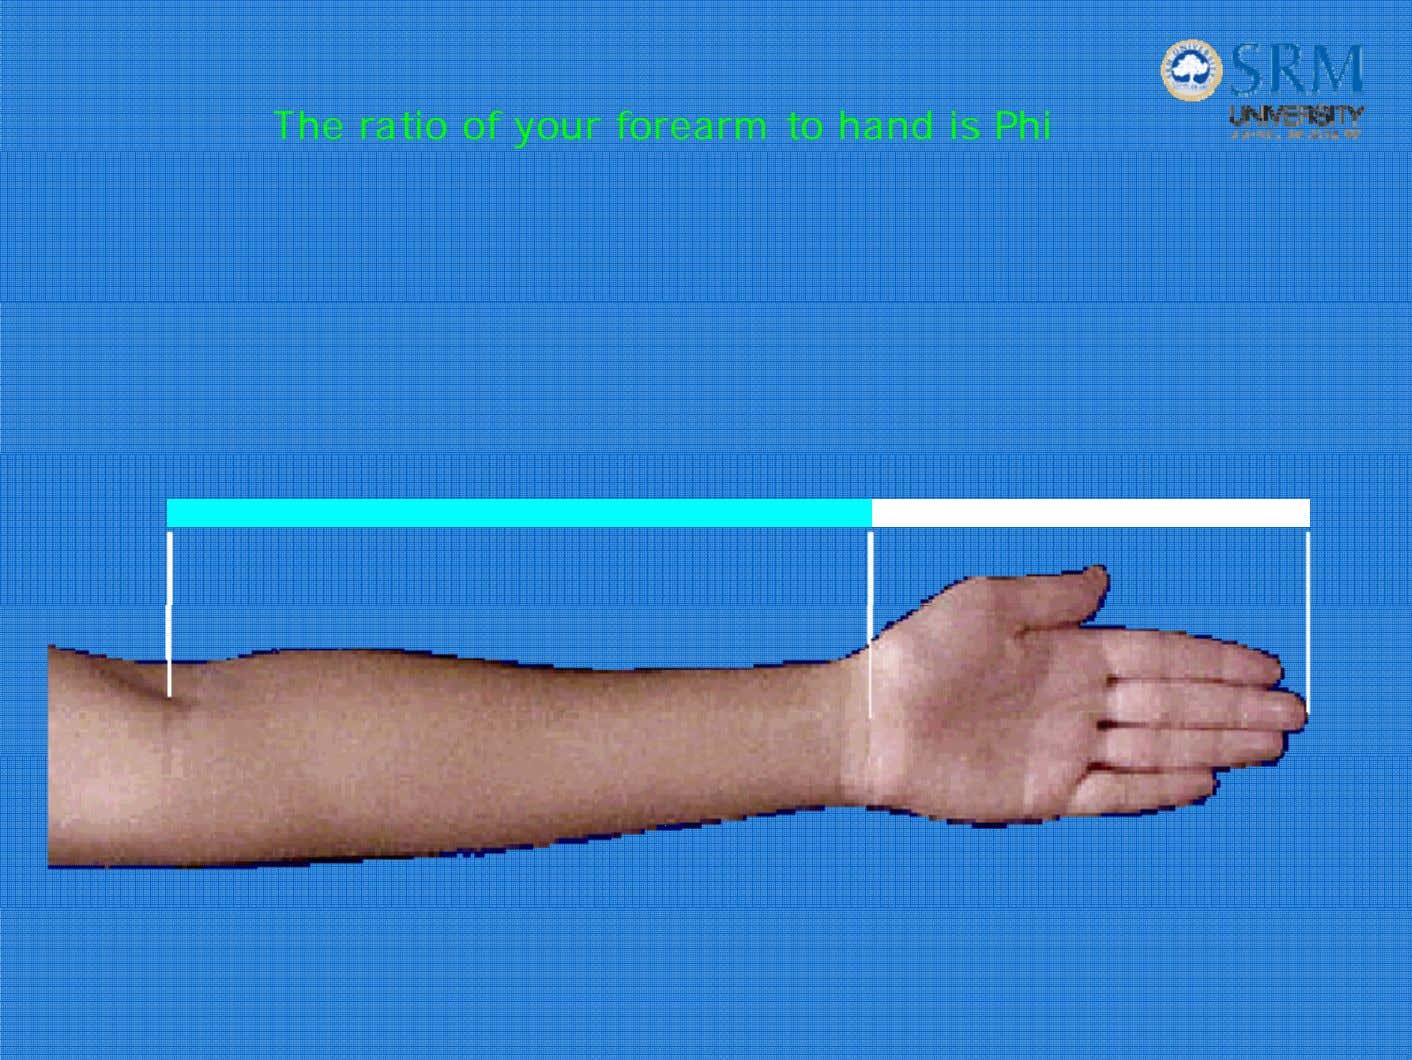 The ratio of your forearm to hand is Phi